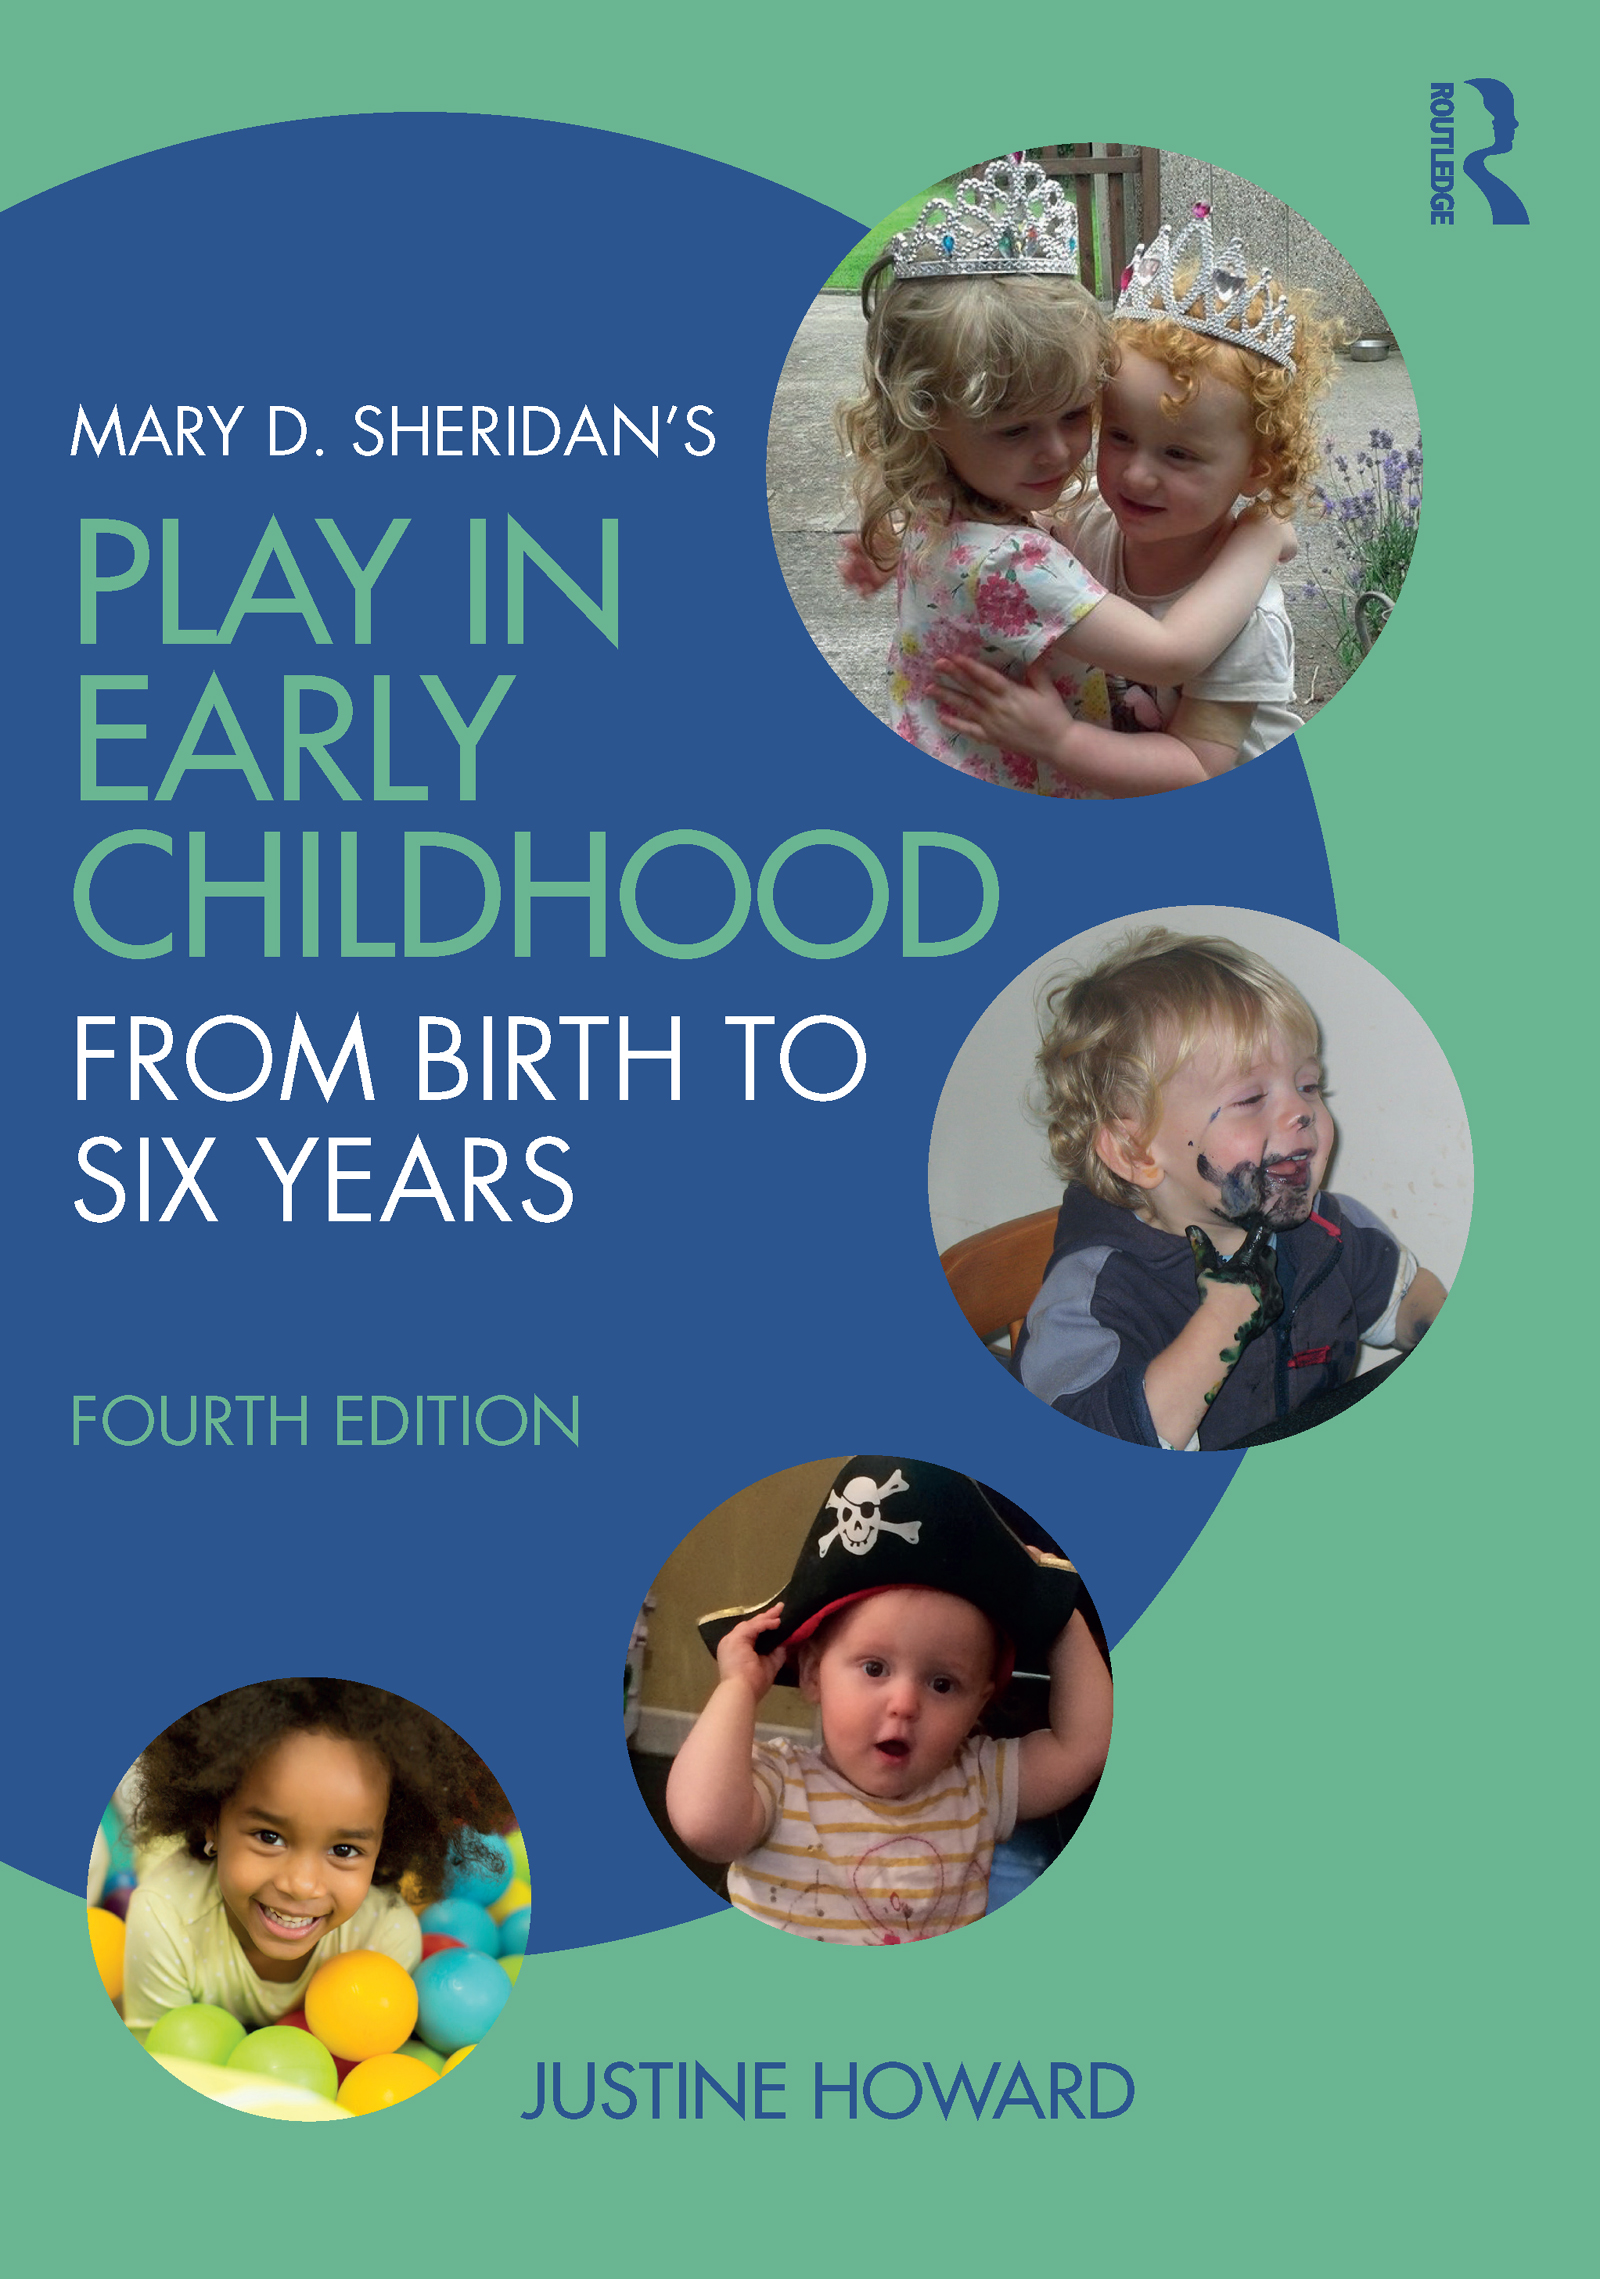 Mary D. Sheridan's Play in Early Childhood: From Birth to Six Years book cover